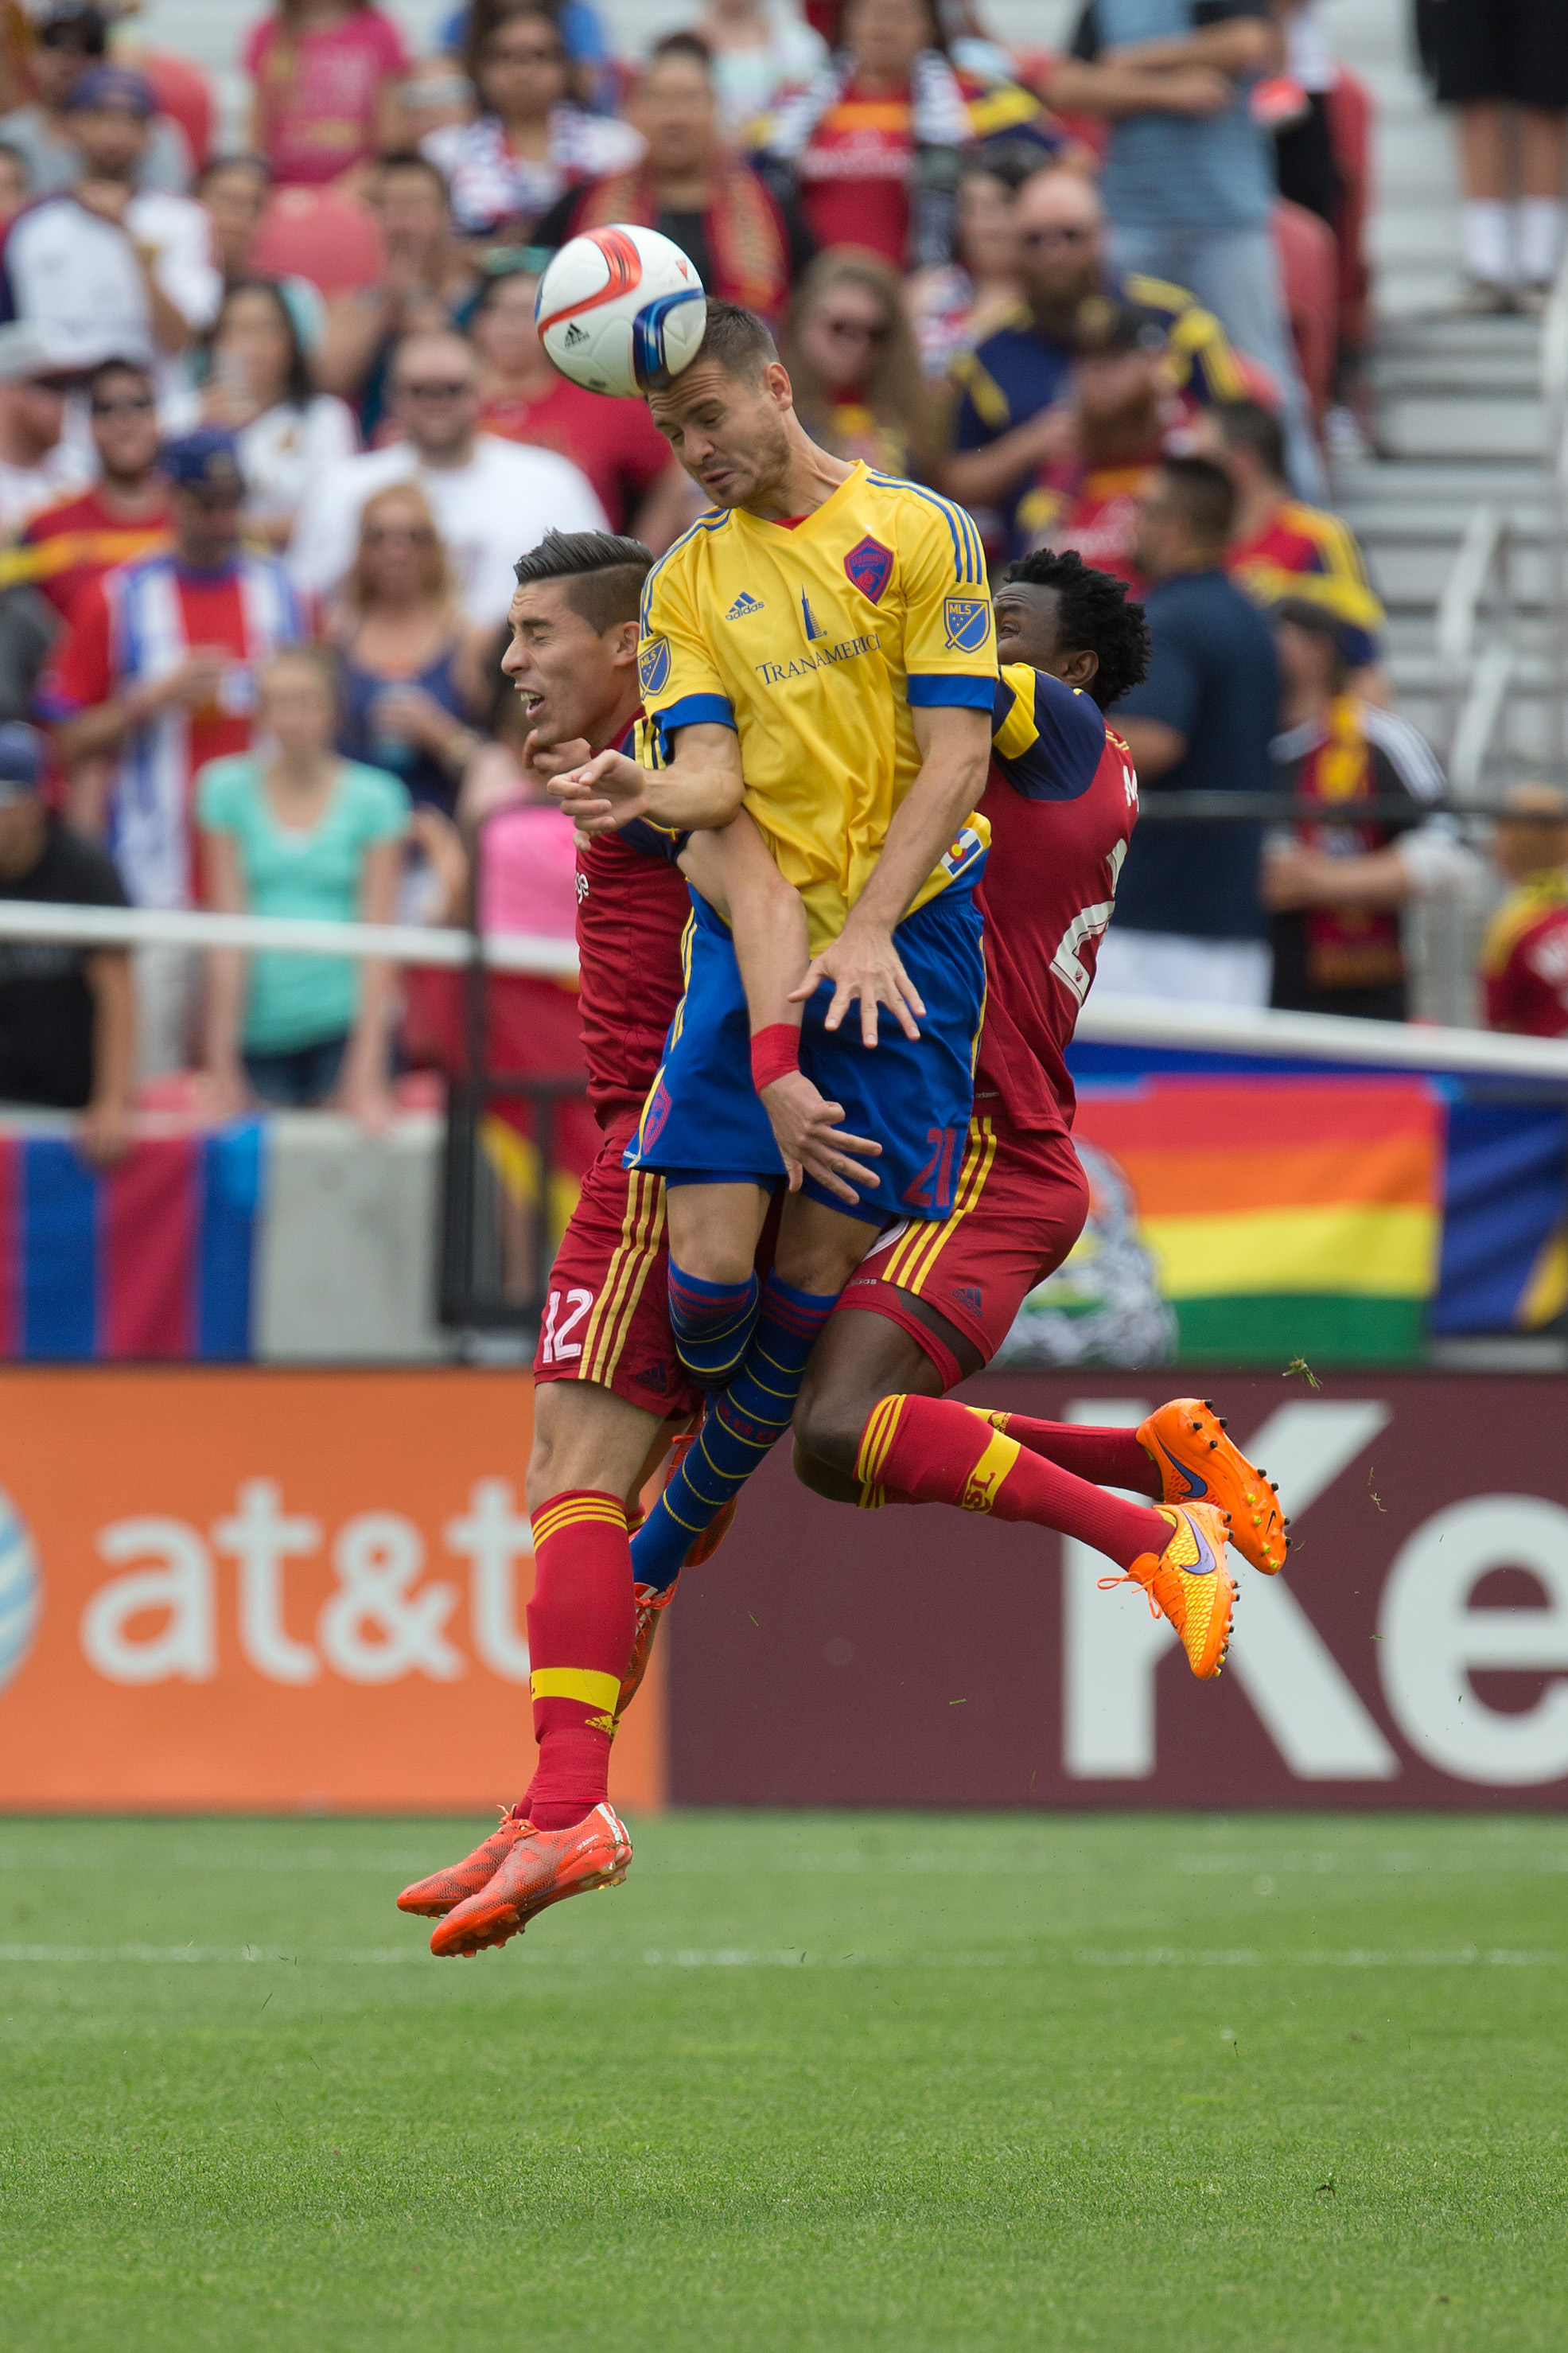 Luis Solignac going up between two RSL defenders and winning control of the ball.